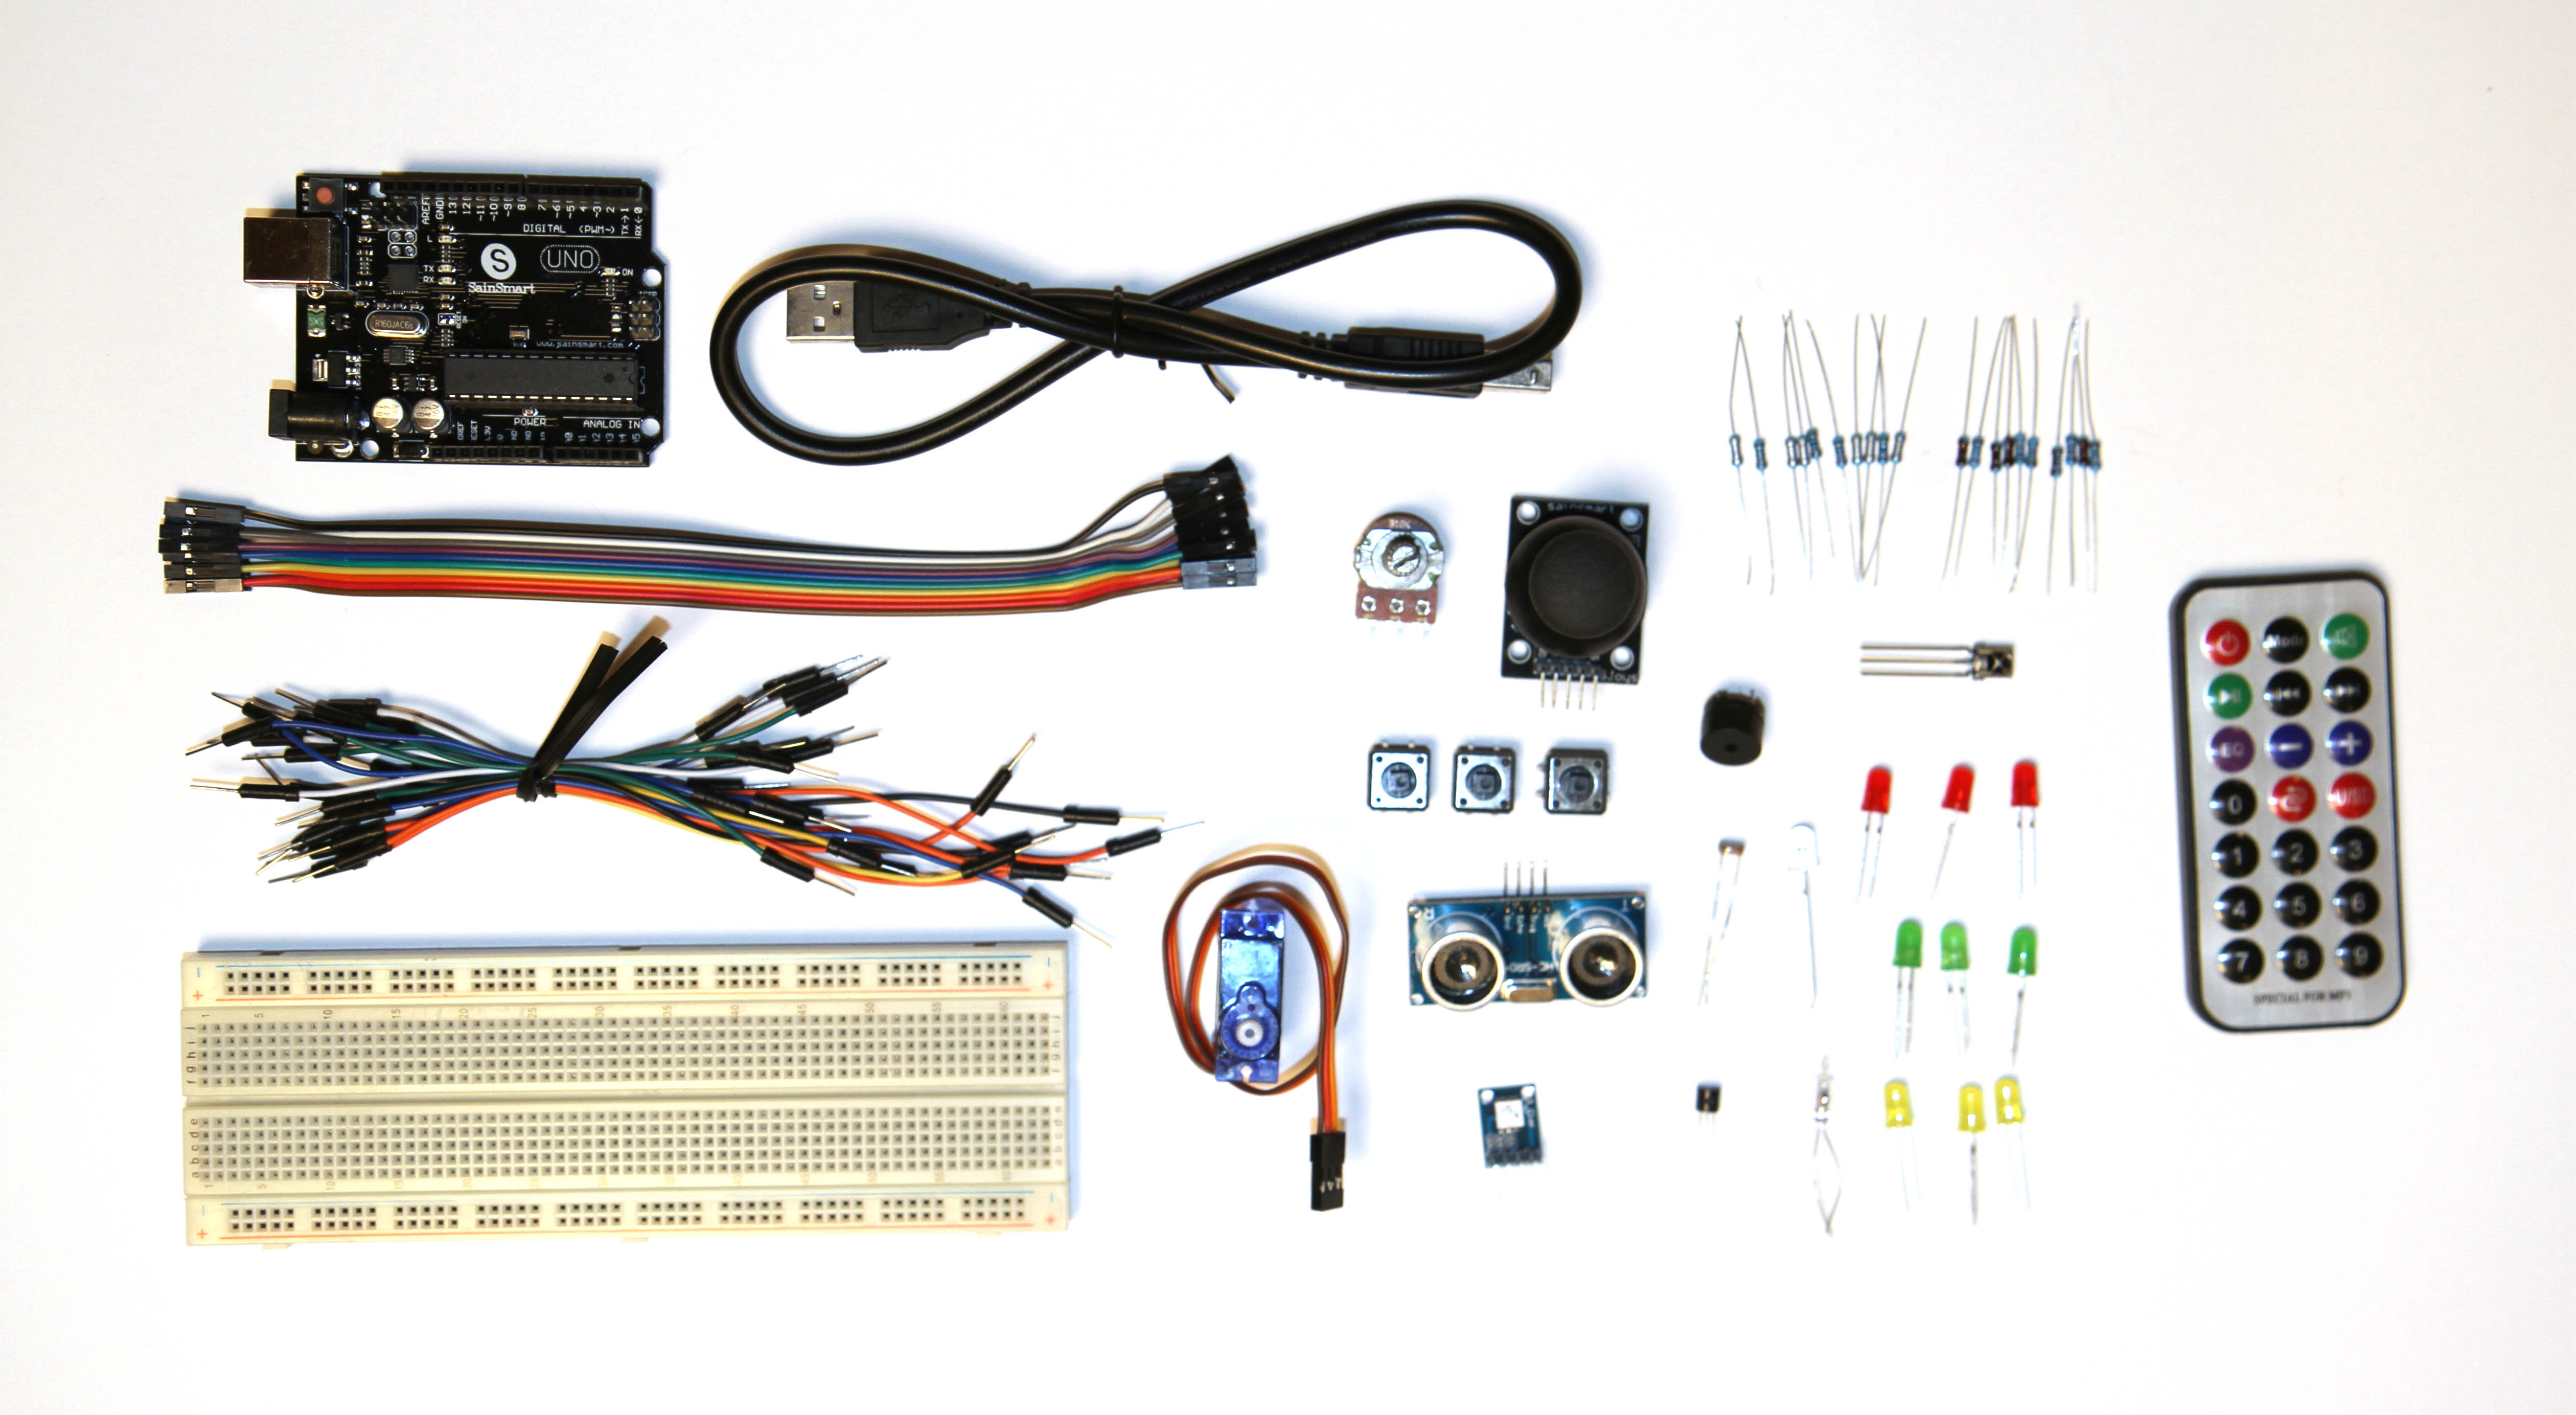 Ardunio Kit Image with remote and LED lights